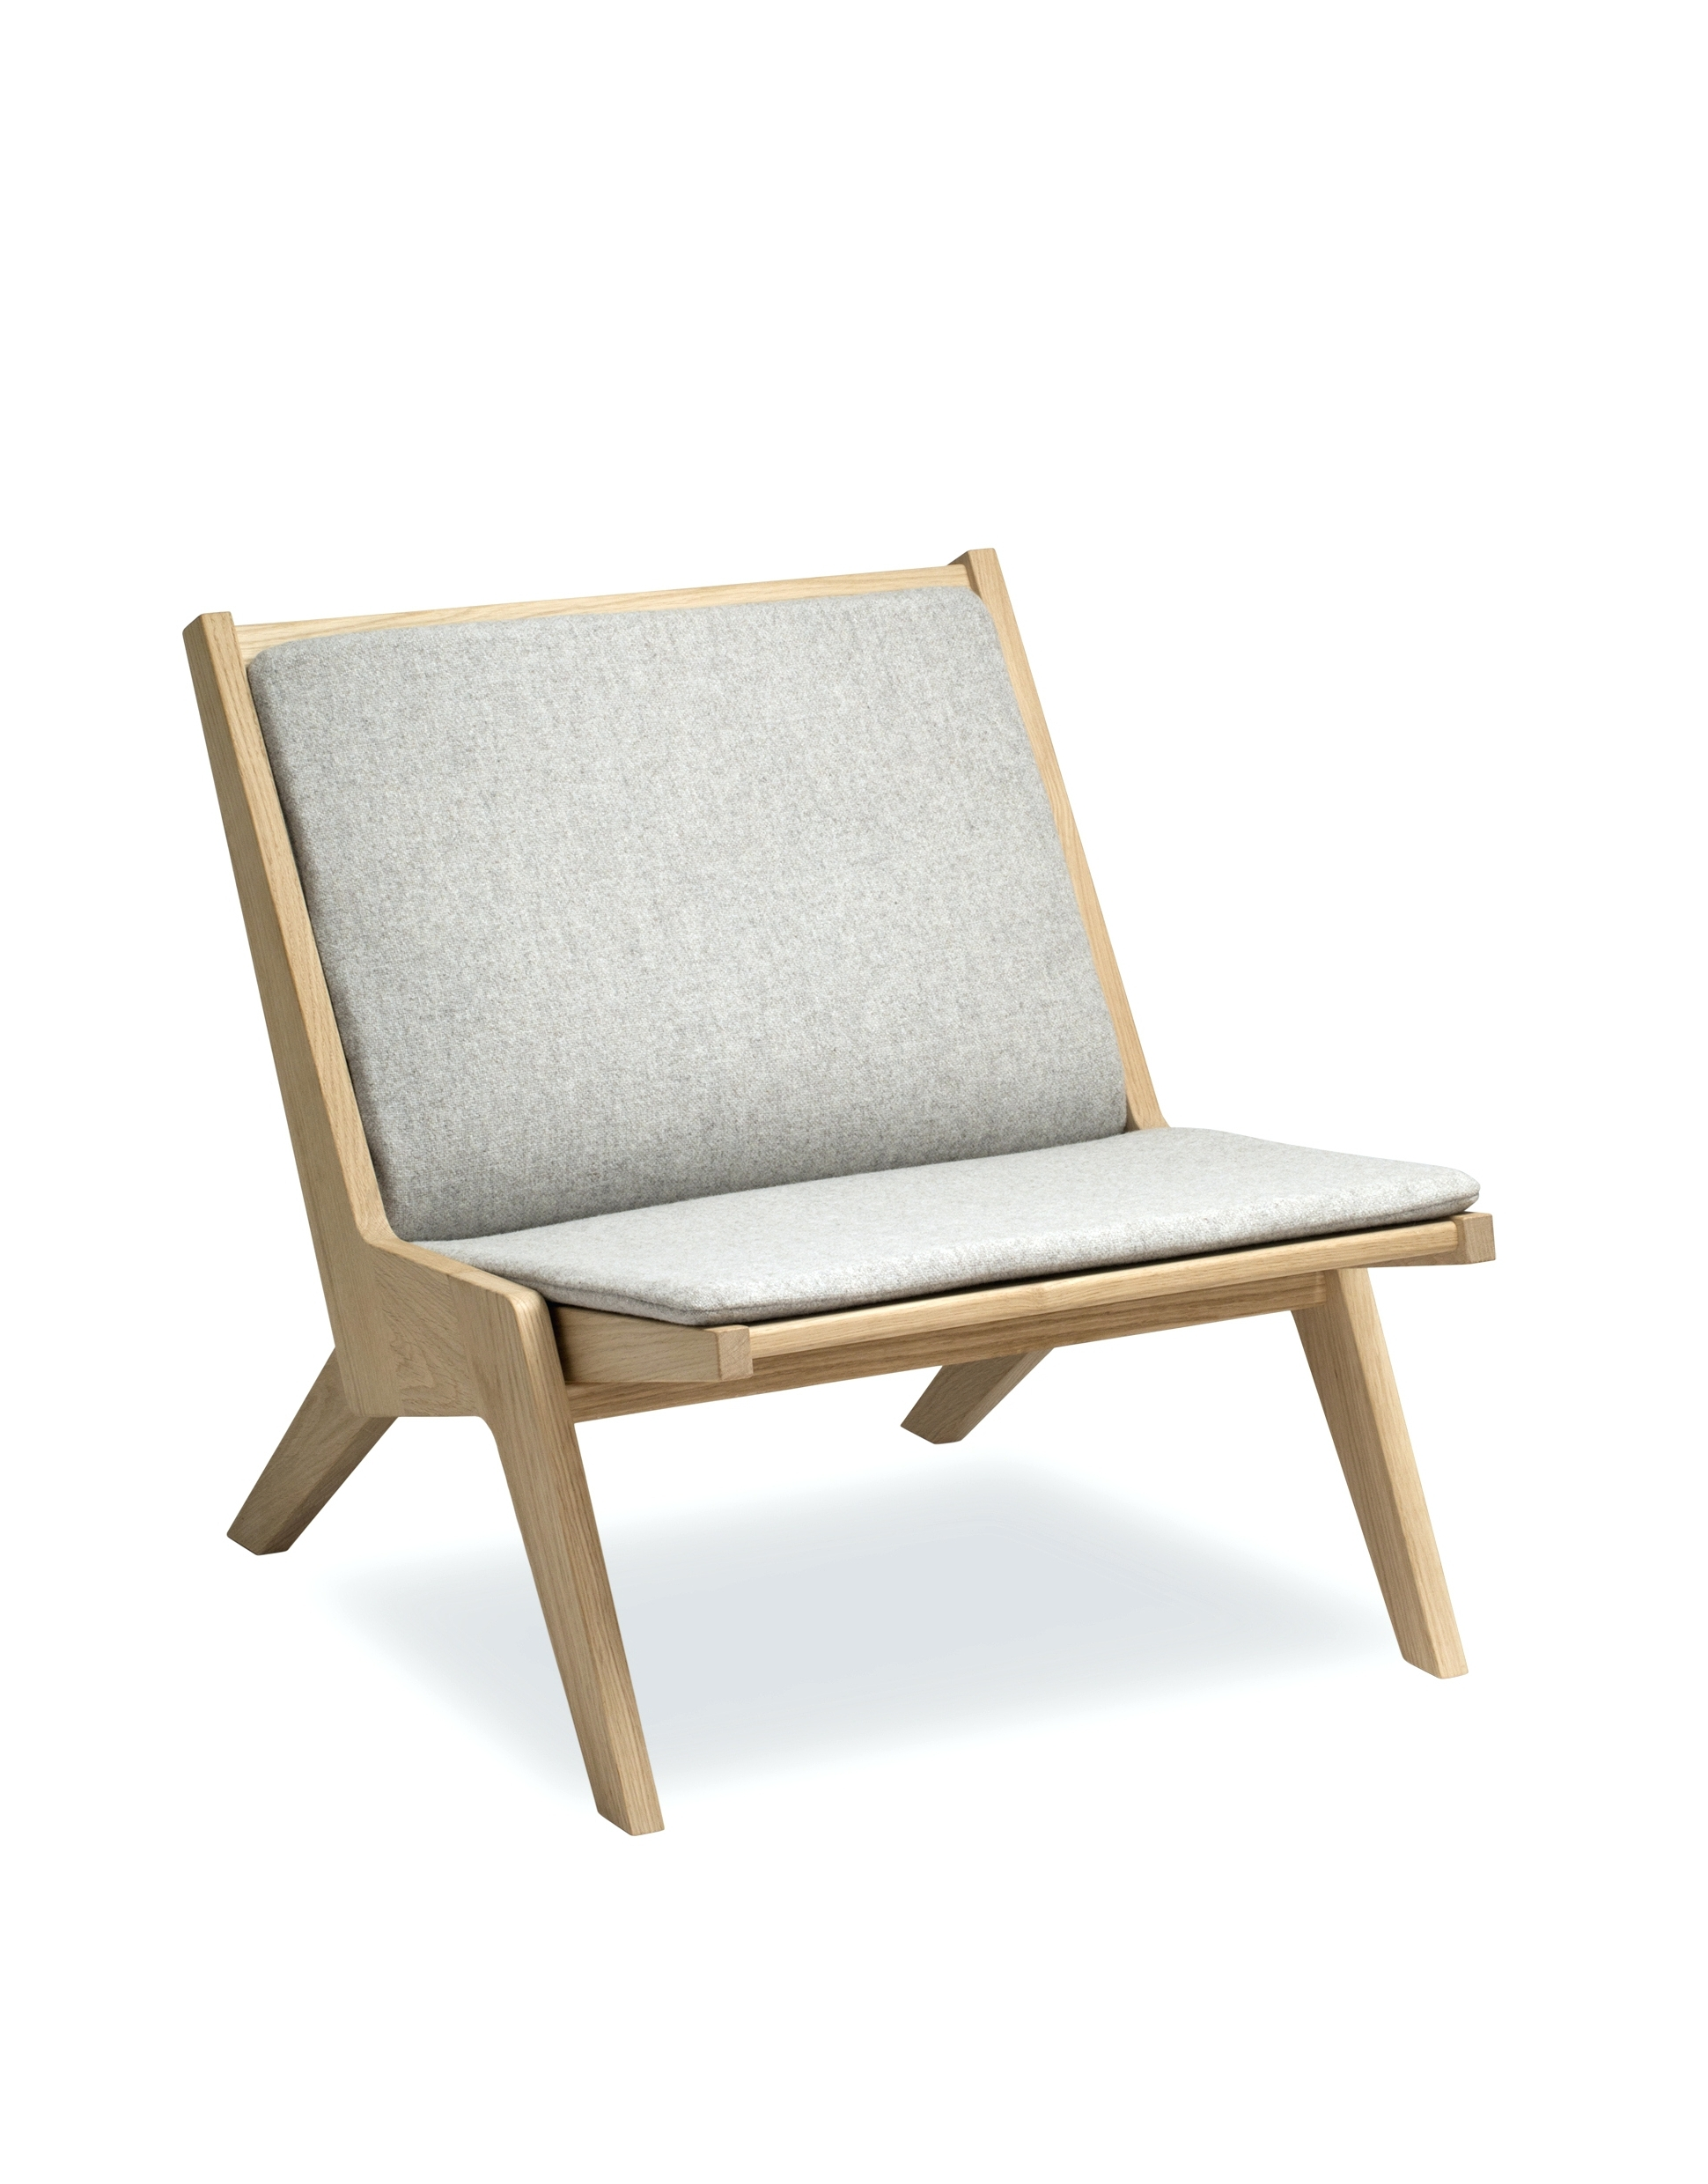 Web Chaise Lounge Lawn Chairs Within Famous Web Chaise Lounge Lawn Chair • Lounge Chairs Ideas (View 2 of 15)